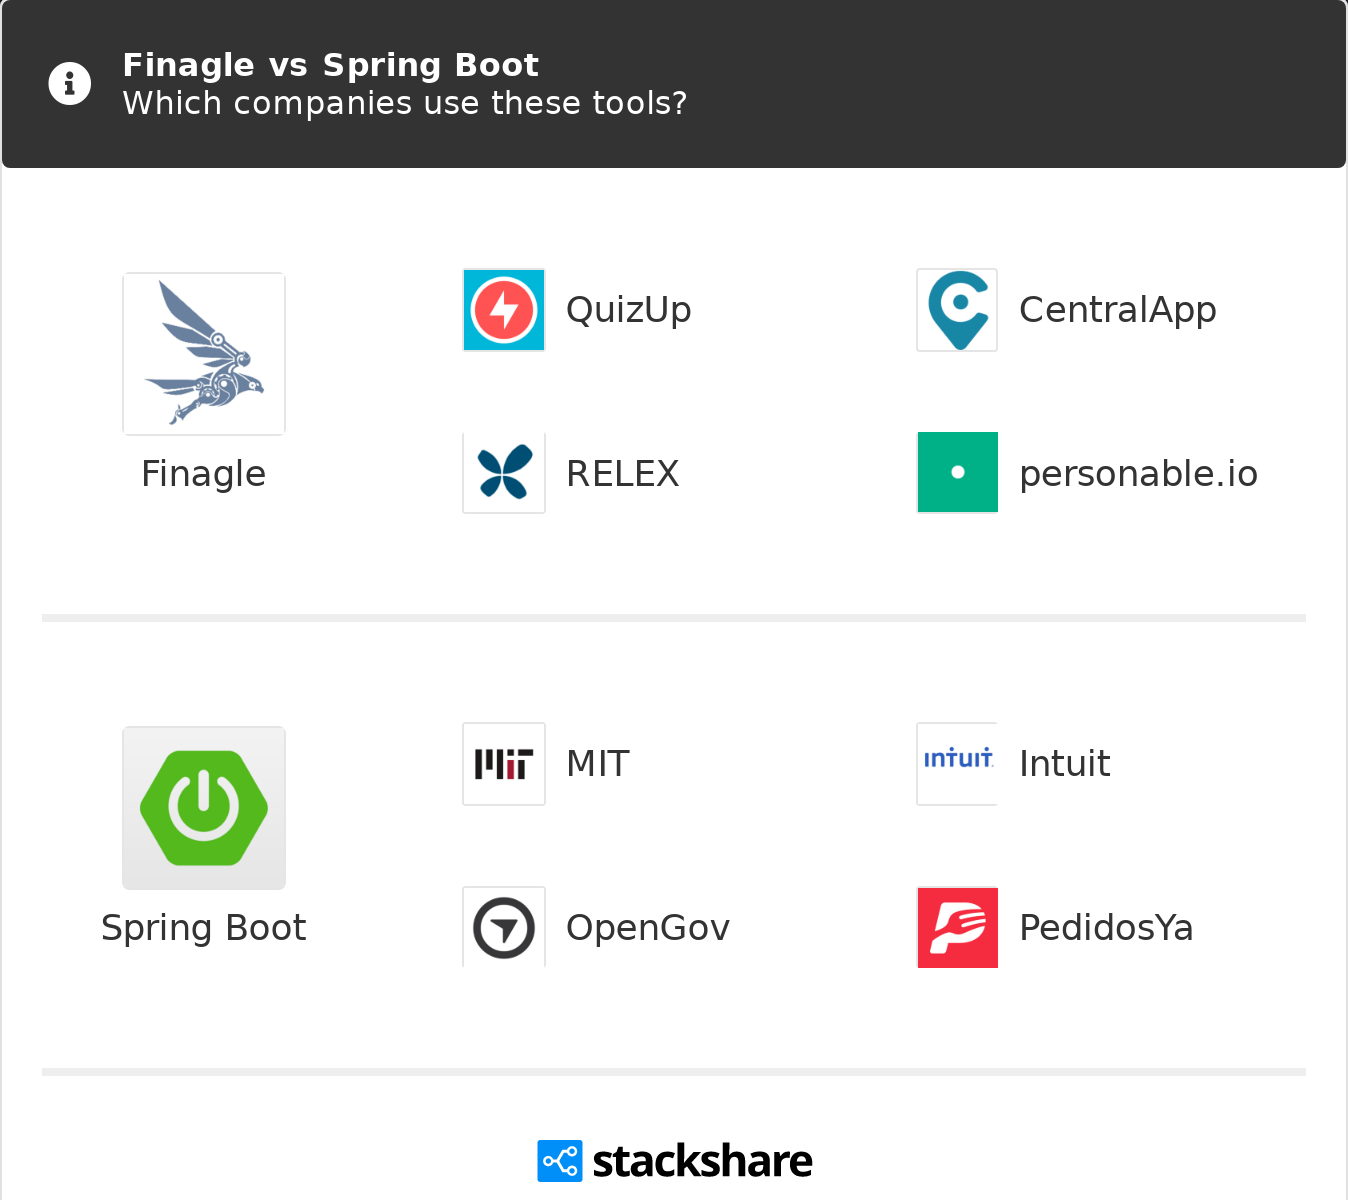 Finagle vs Spring Boot | What are the differences?